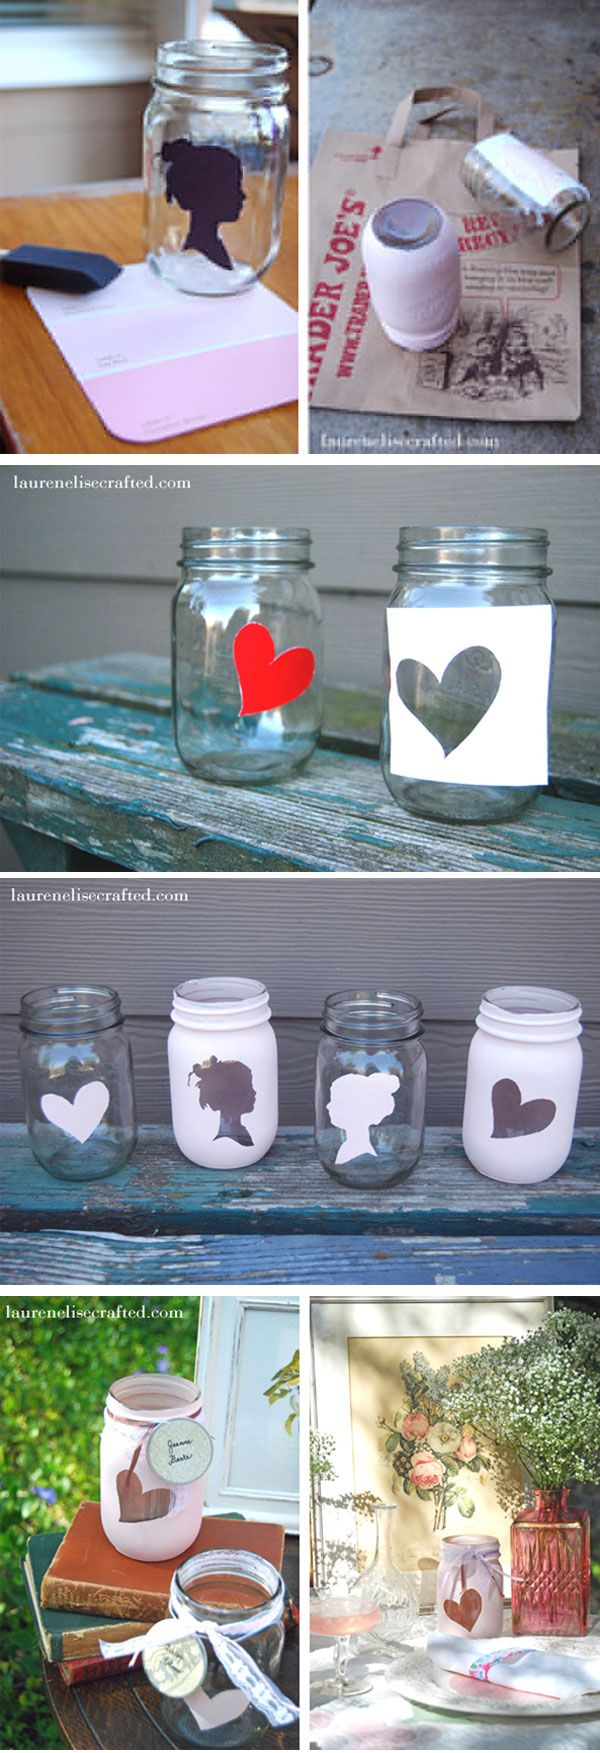 #GlassIsLife Idee per decorare barattoli in vetro #DIY